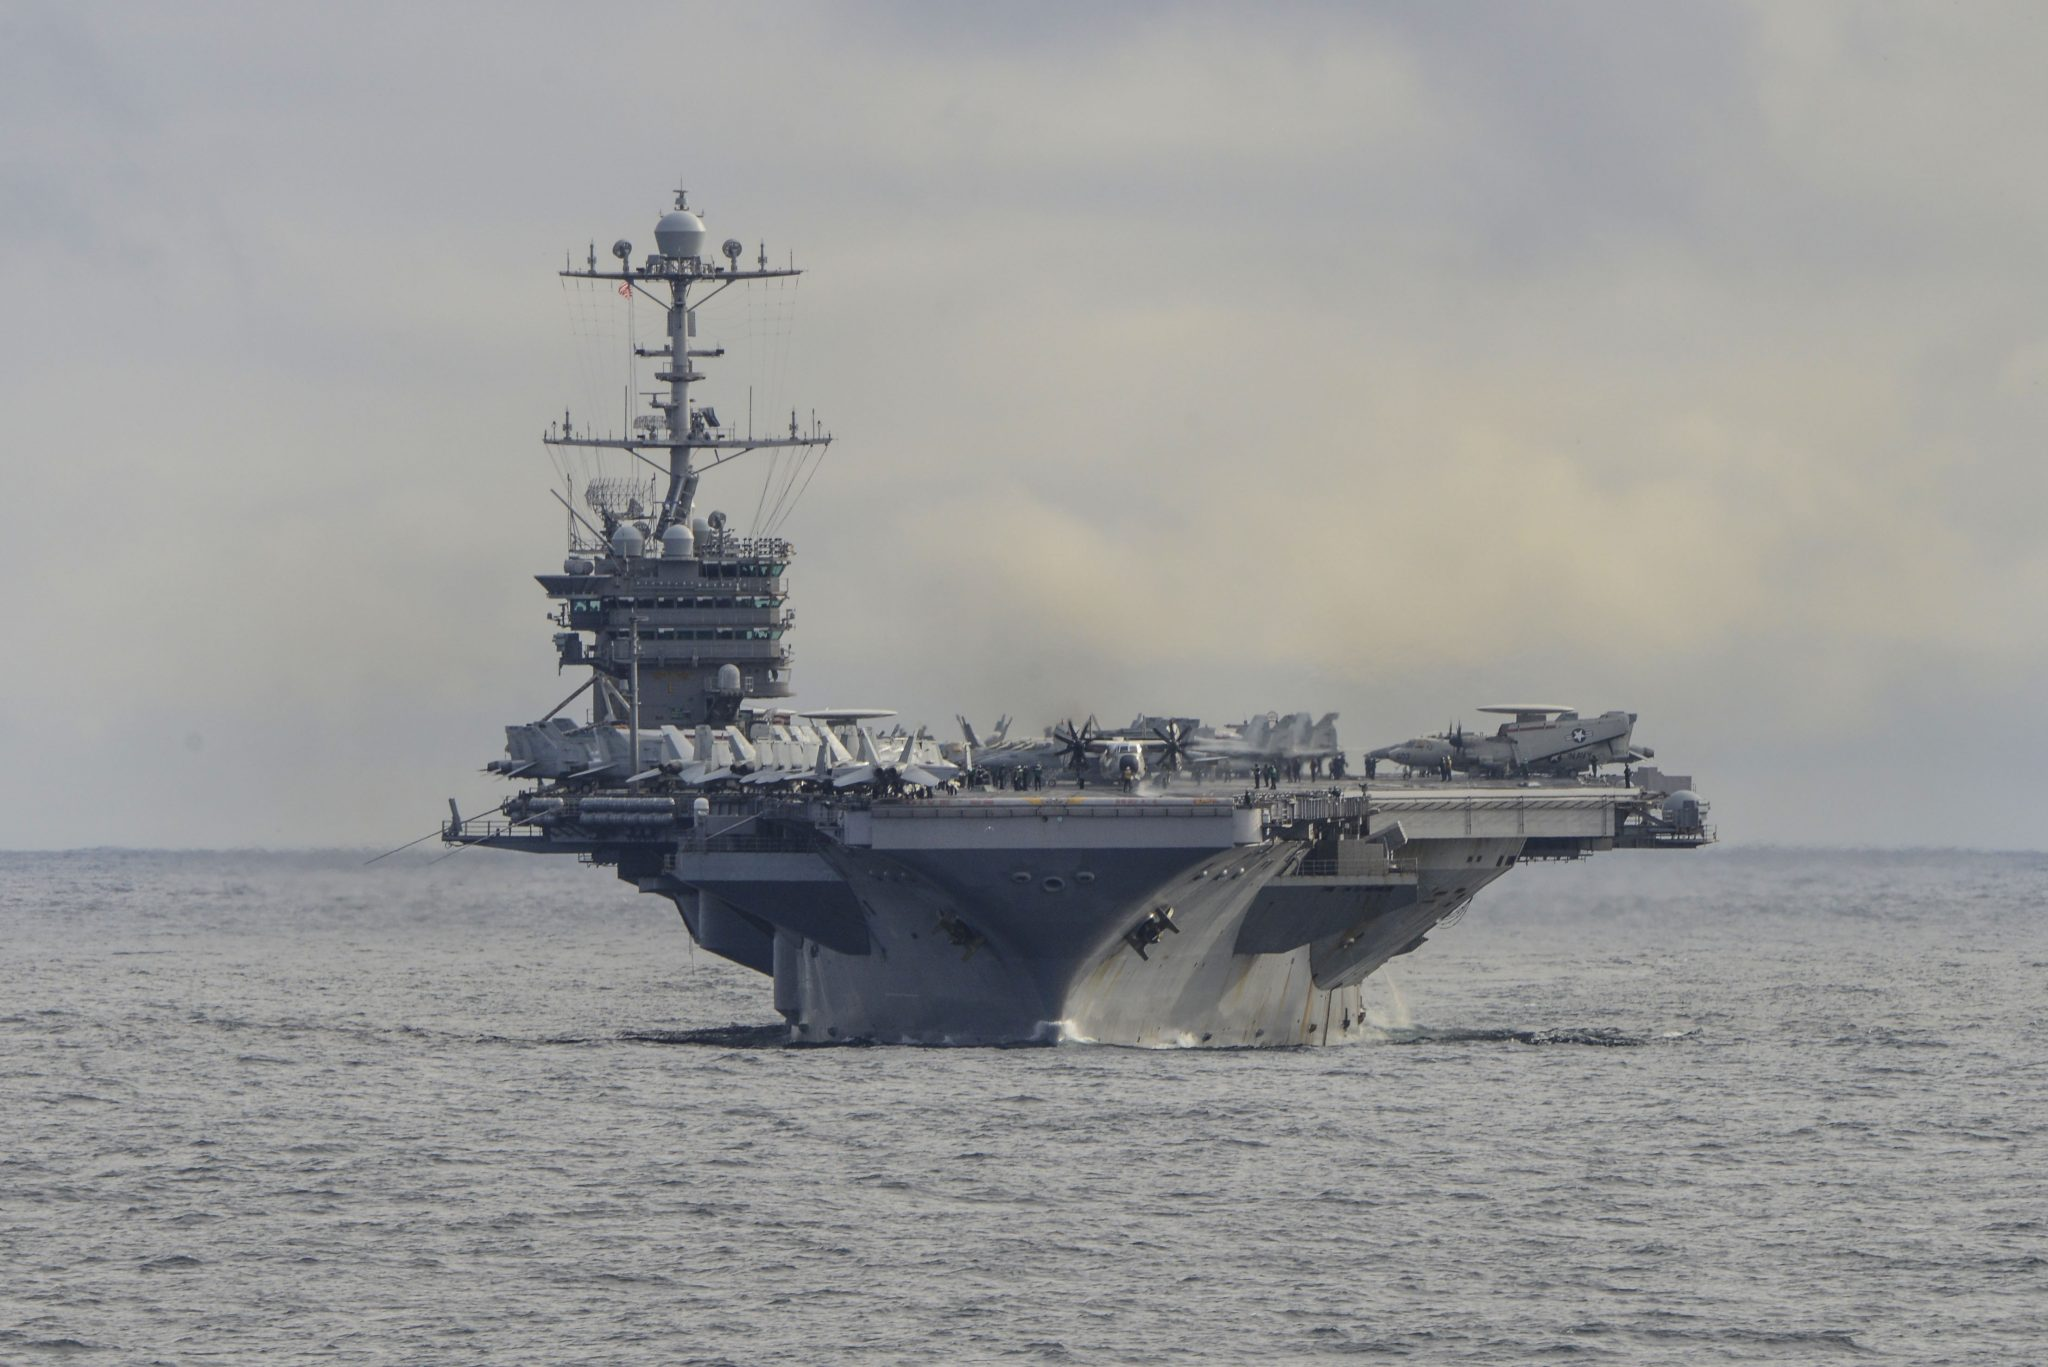 The US Navy partners with Xerox on 3D printing research and installs the Xerox ElemX 3D printer